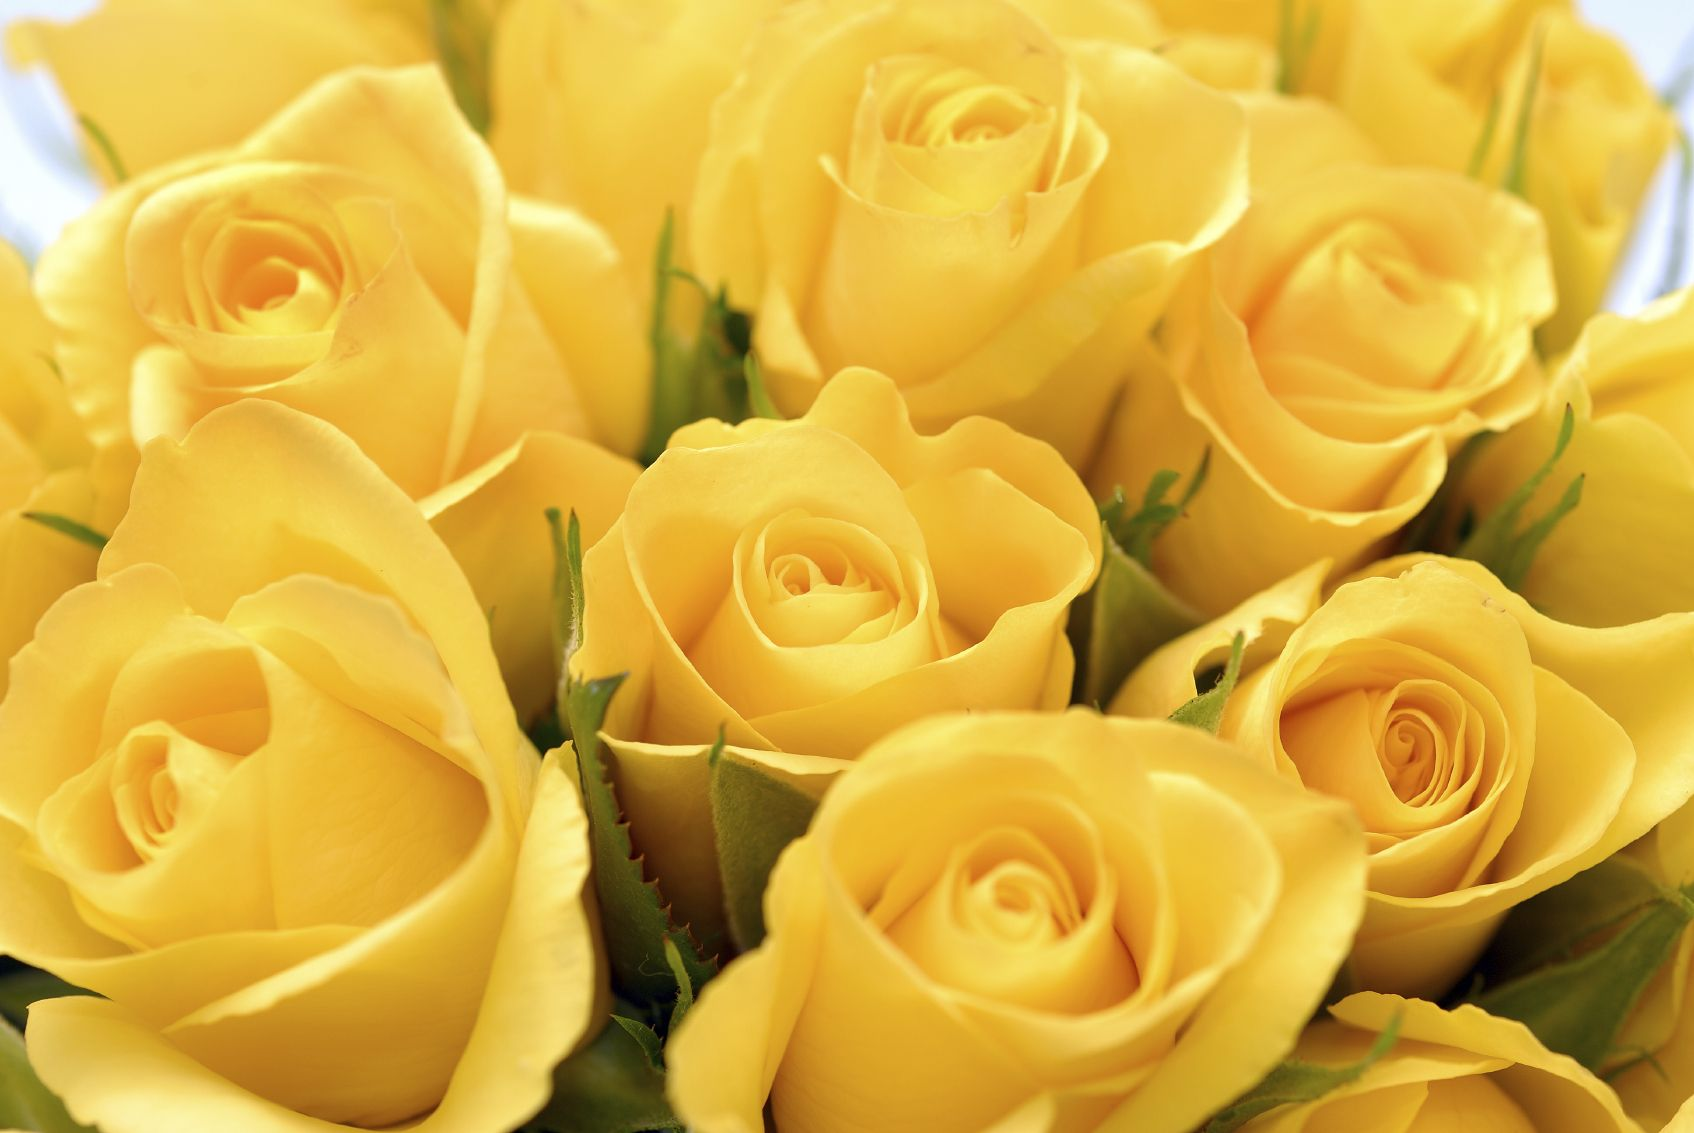 Hd wallpaper yellow flowers - Yellow Roses You Can Post On Facebook Yellow Roses